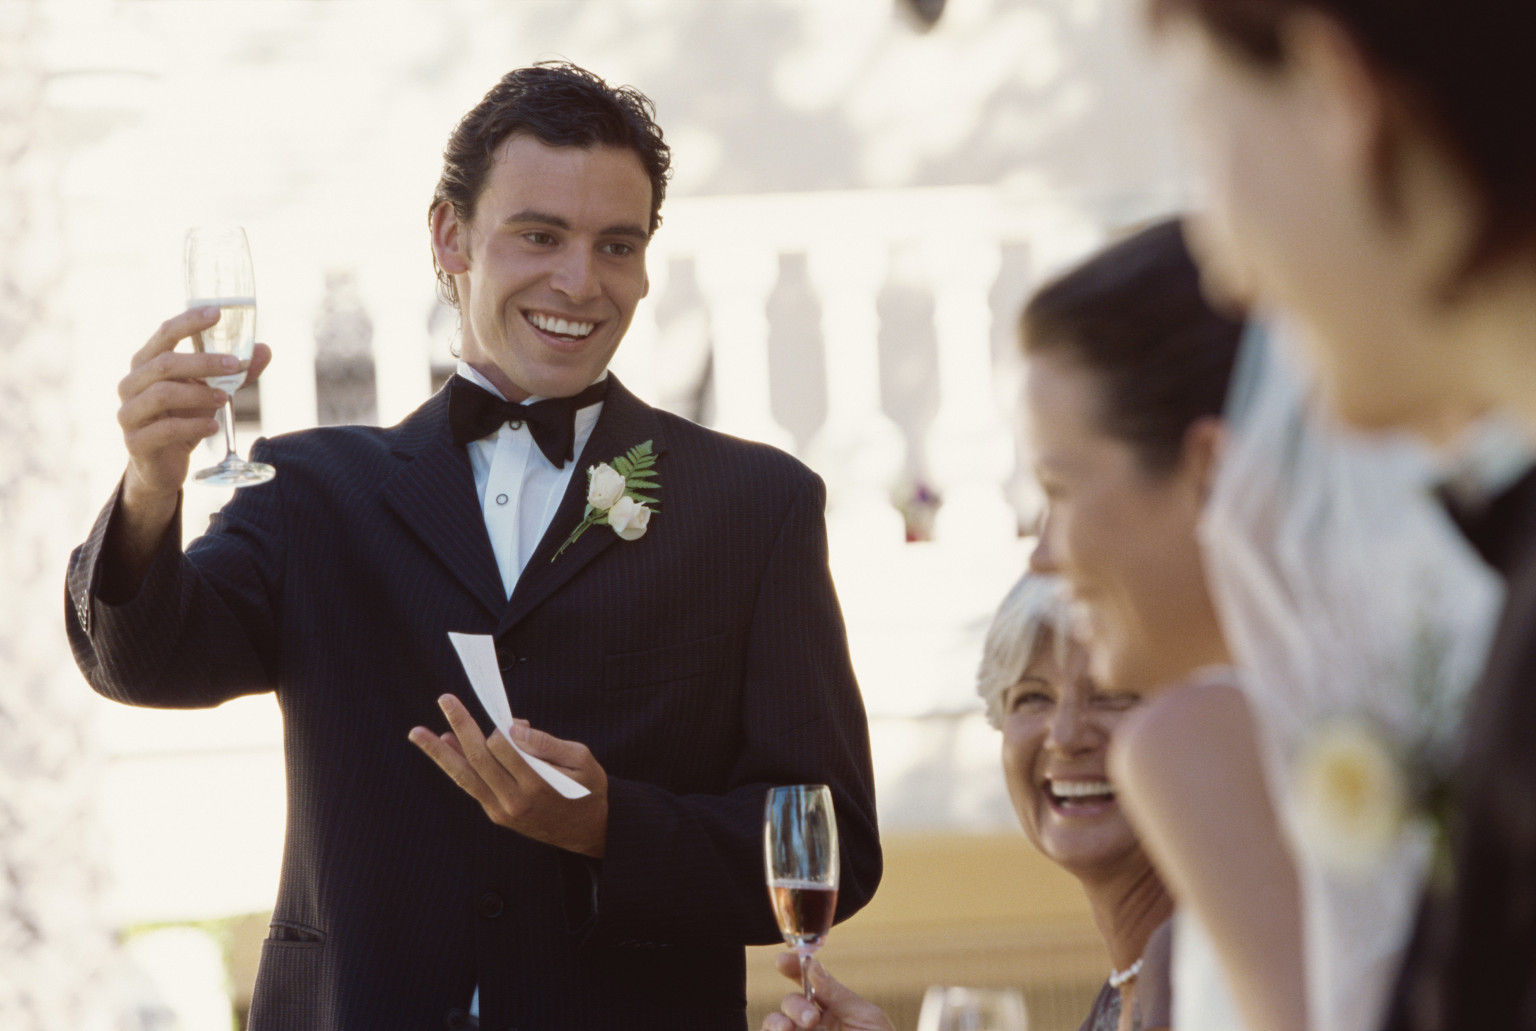 Best Man Speech Tips & Tricks